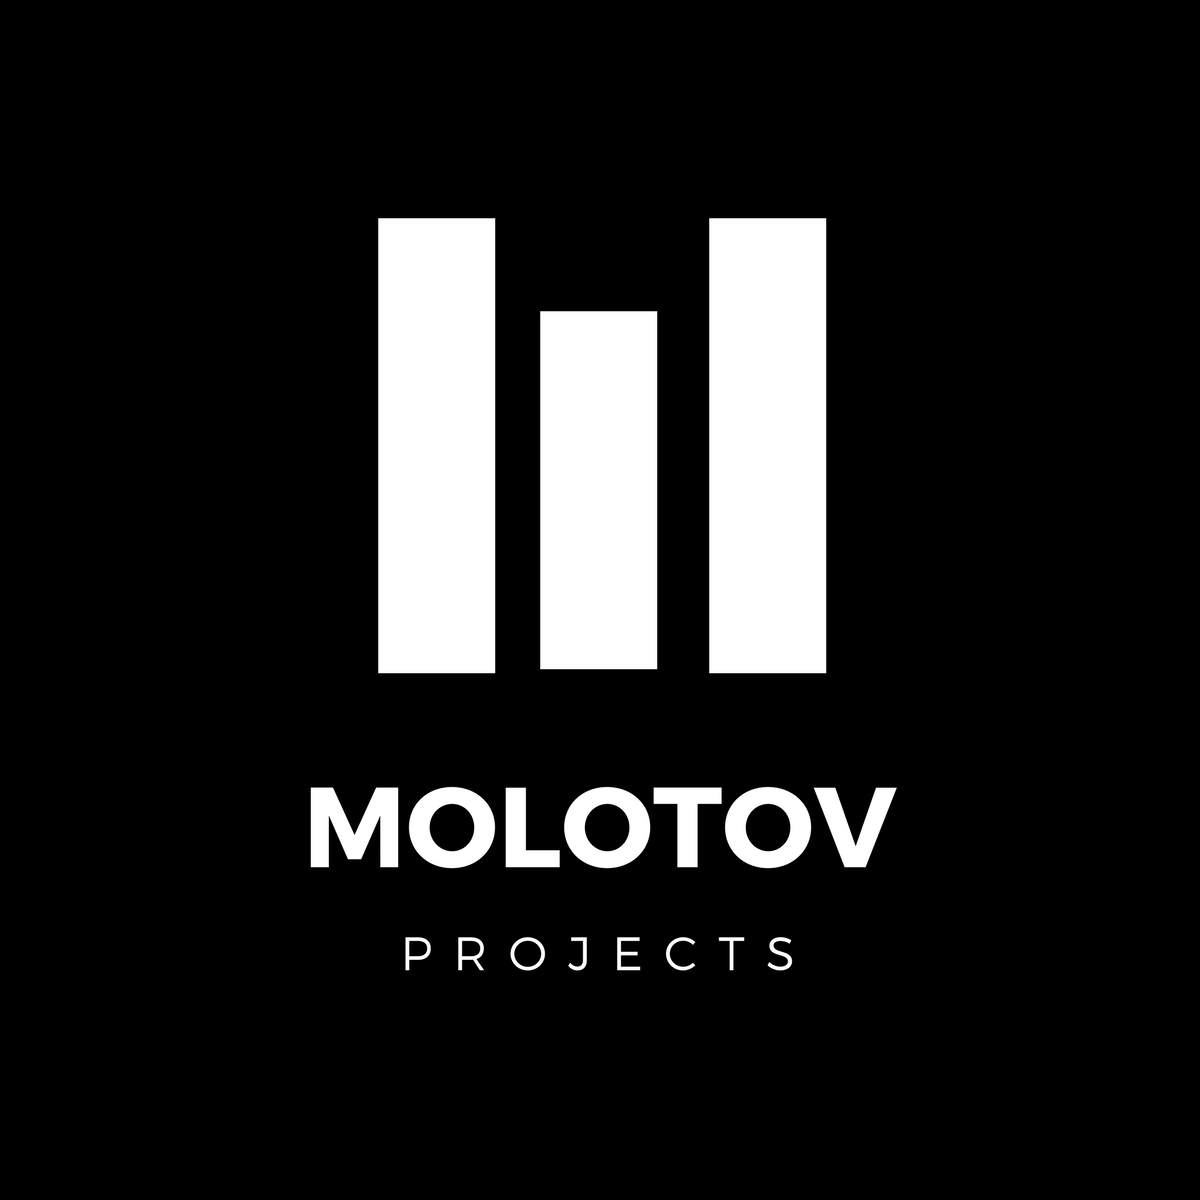 Molotov Projects